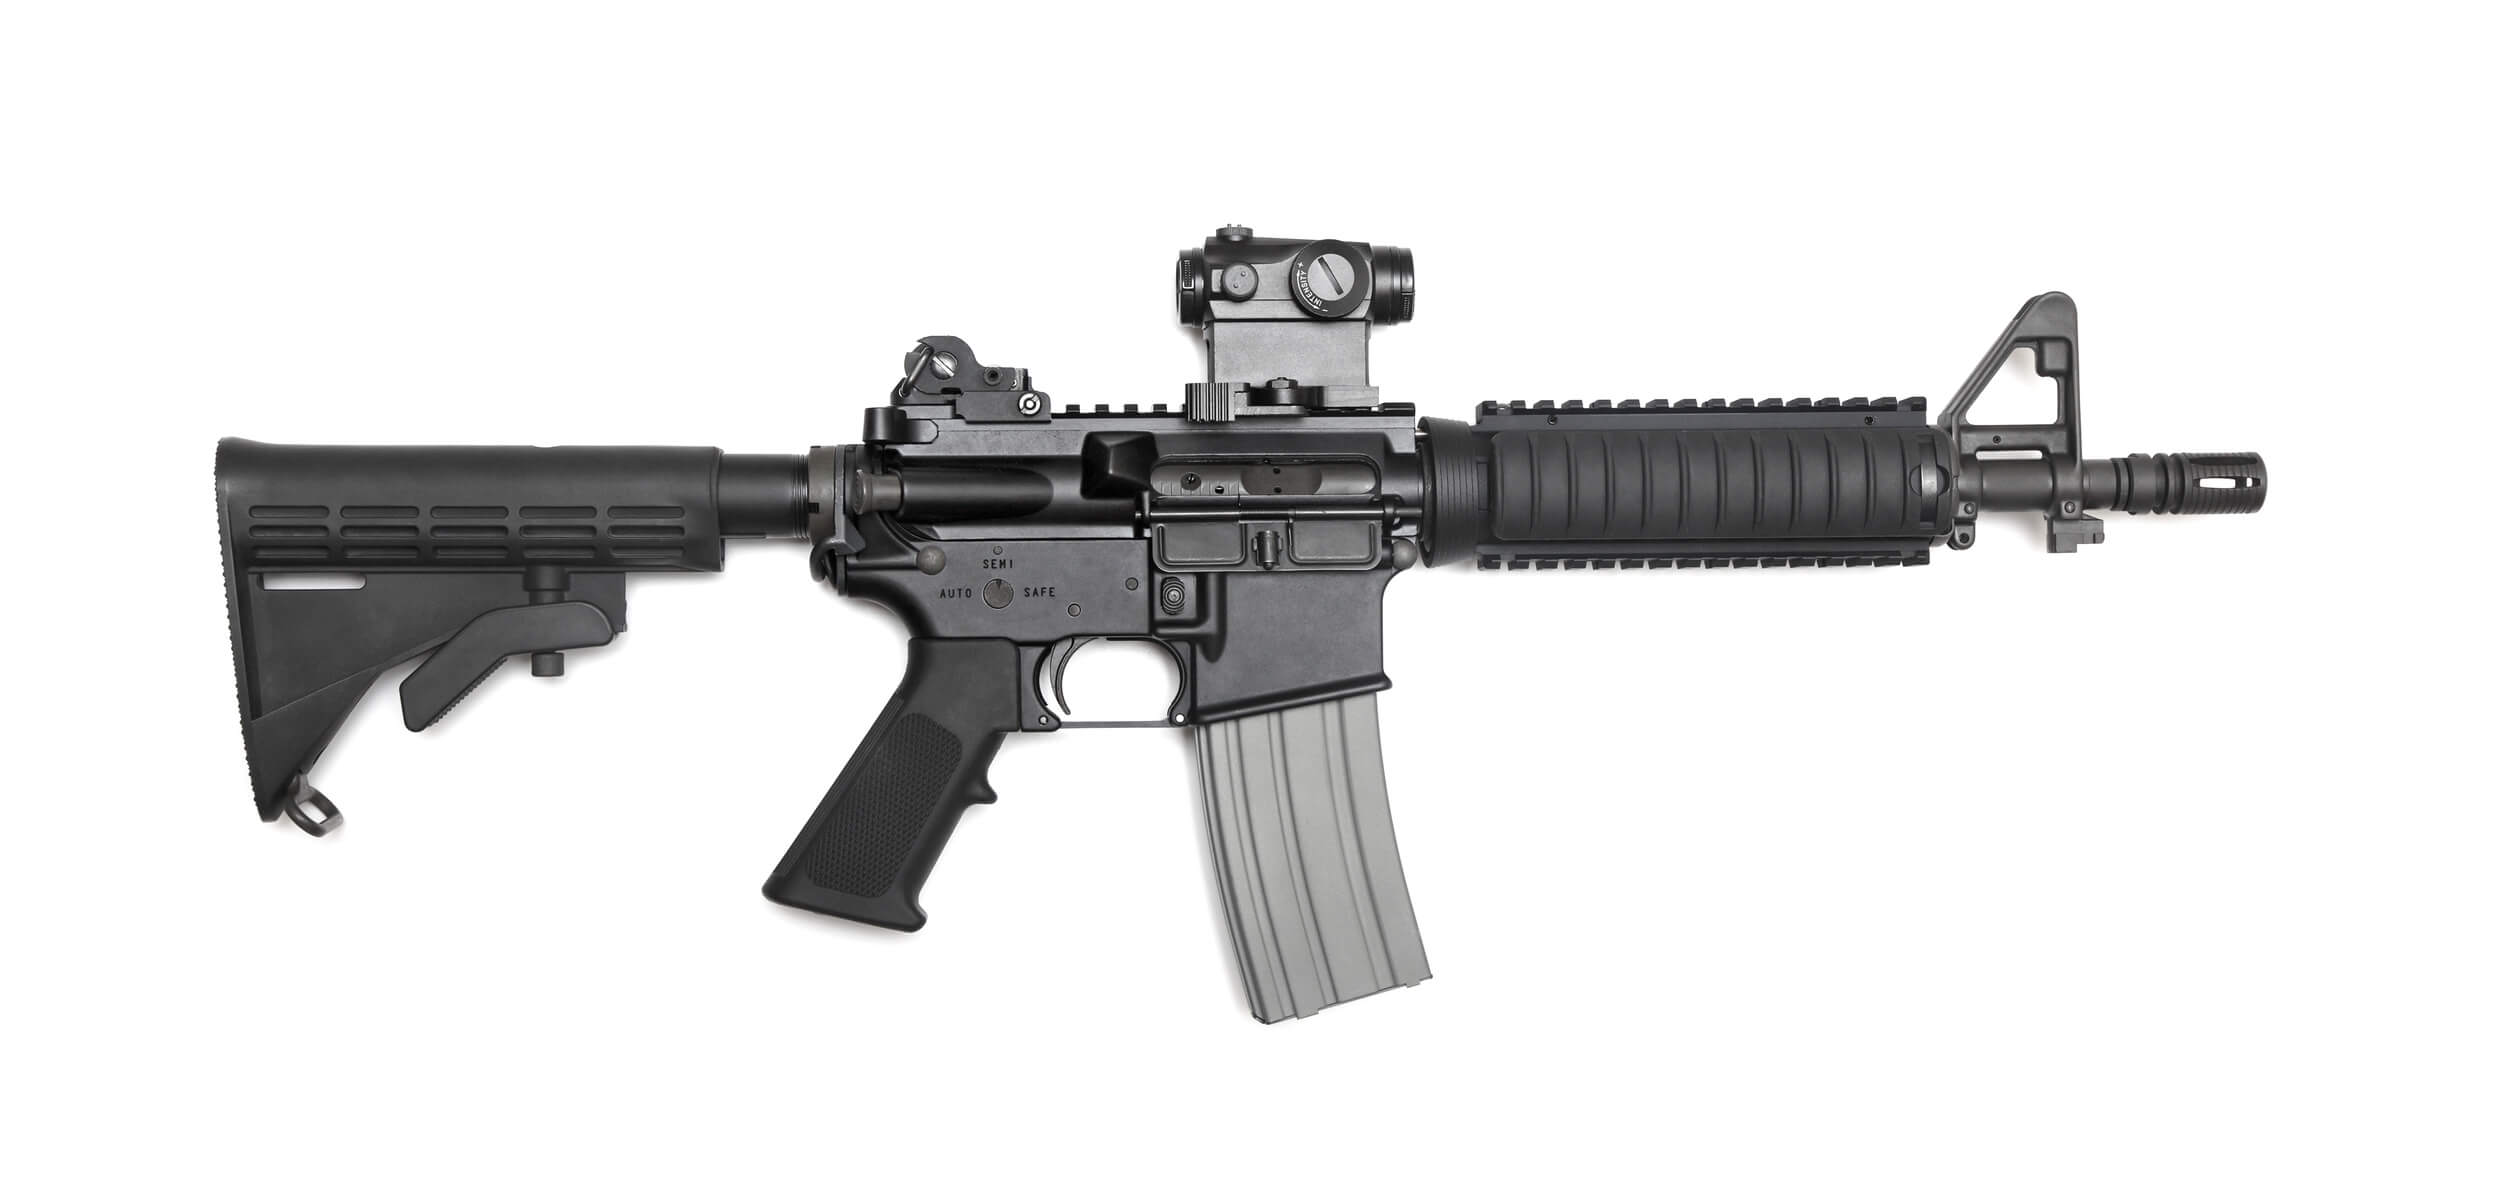 A tactical assault rifle which a reporter tried to purchase for a story.